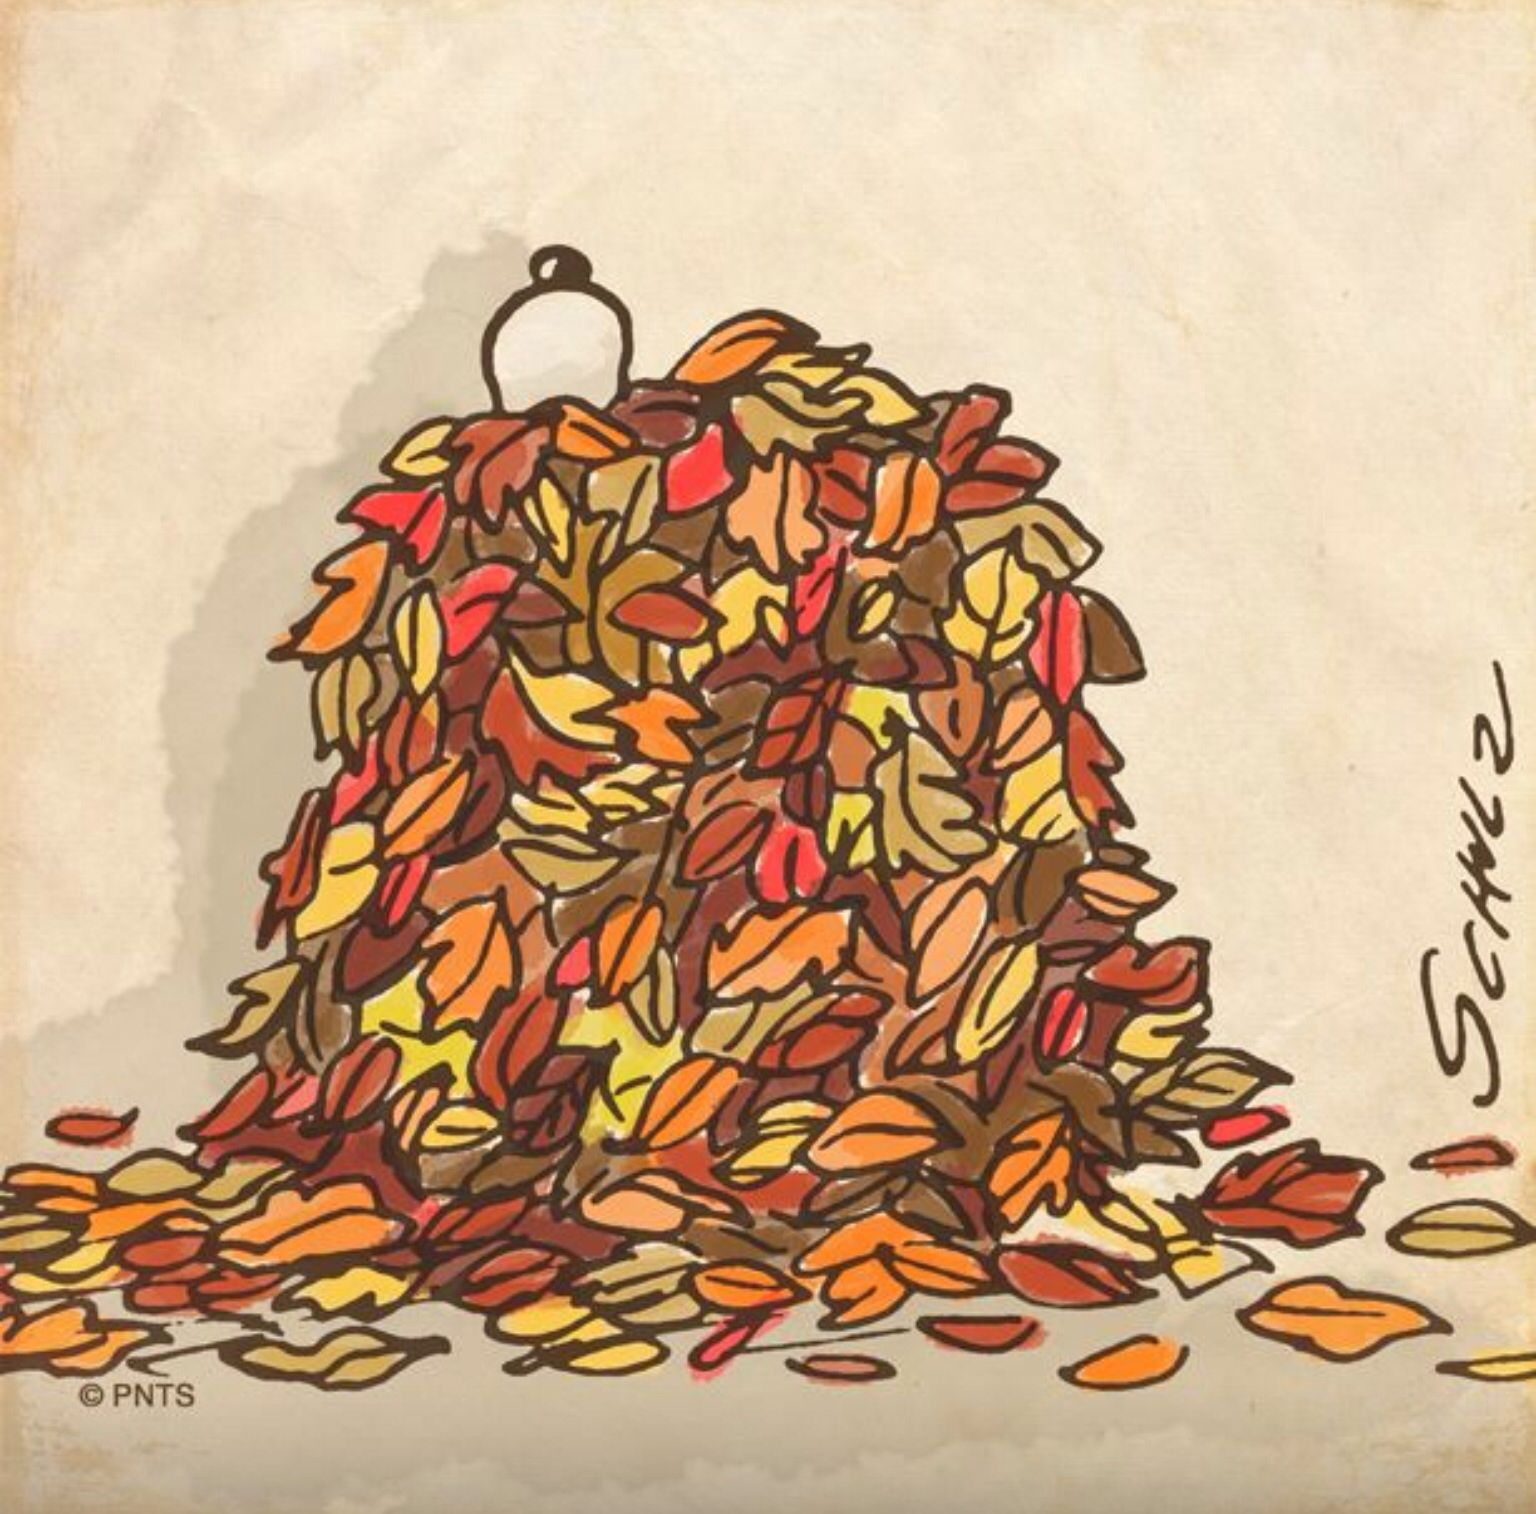 Snoopy In A Leaf Pile Snoopy Love Charlie Brown Charlie Brown And Snoopy